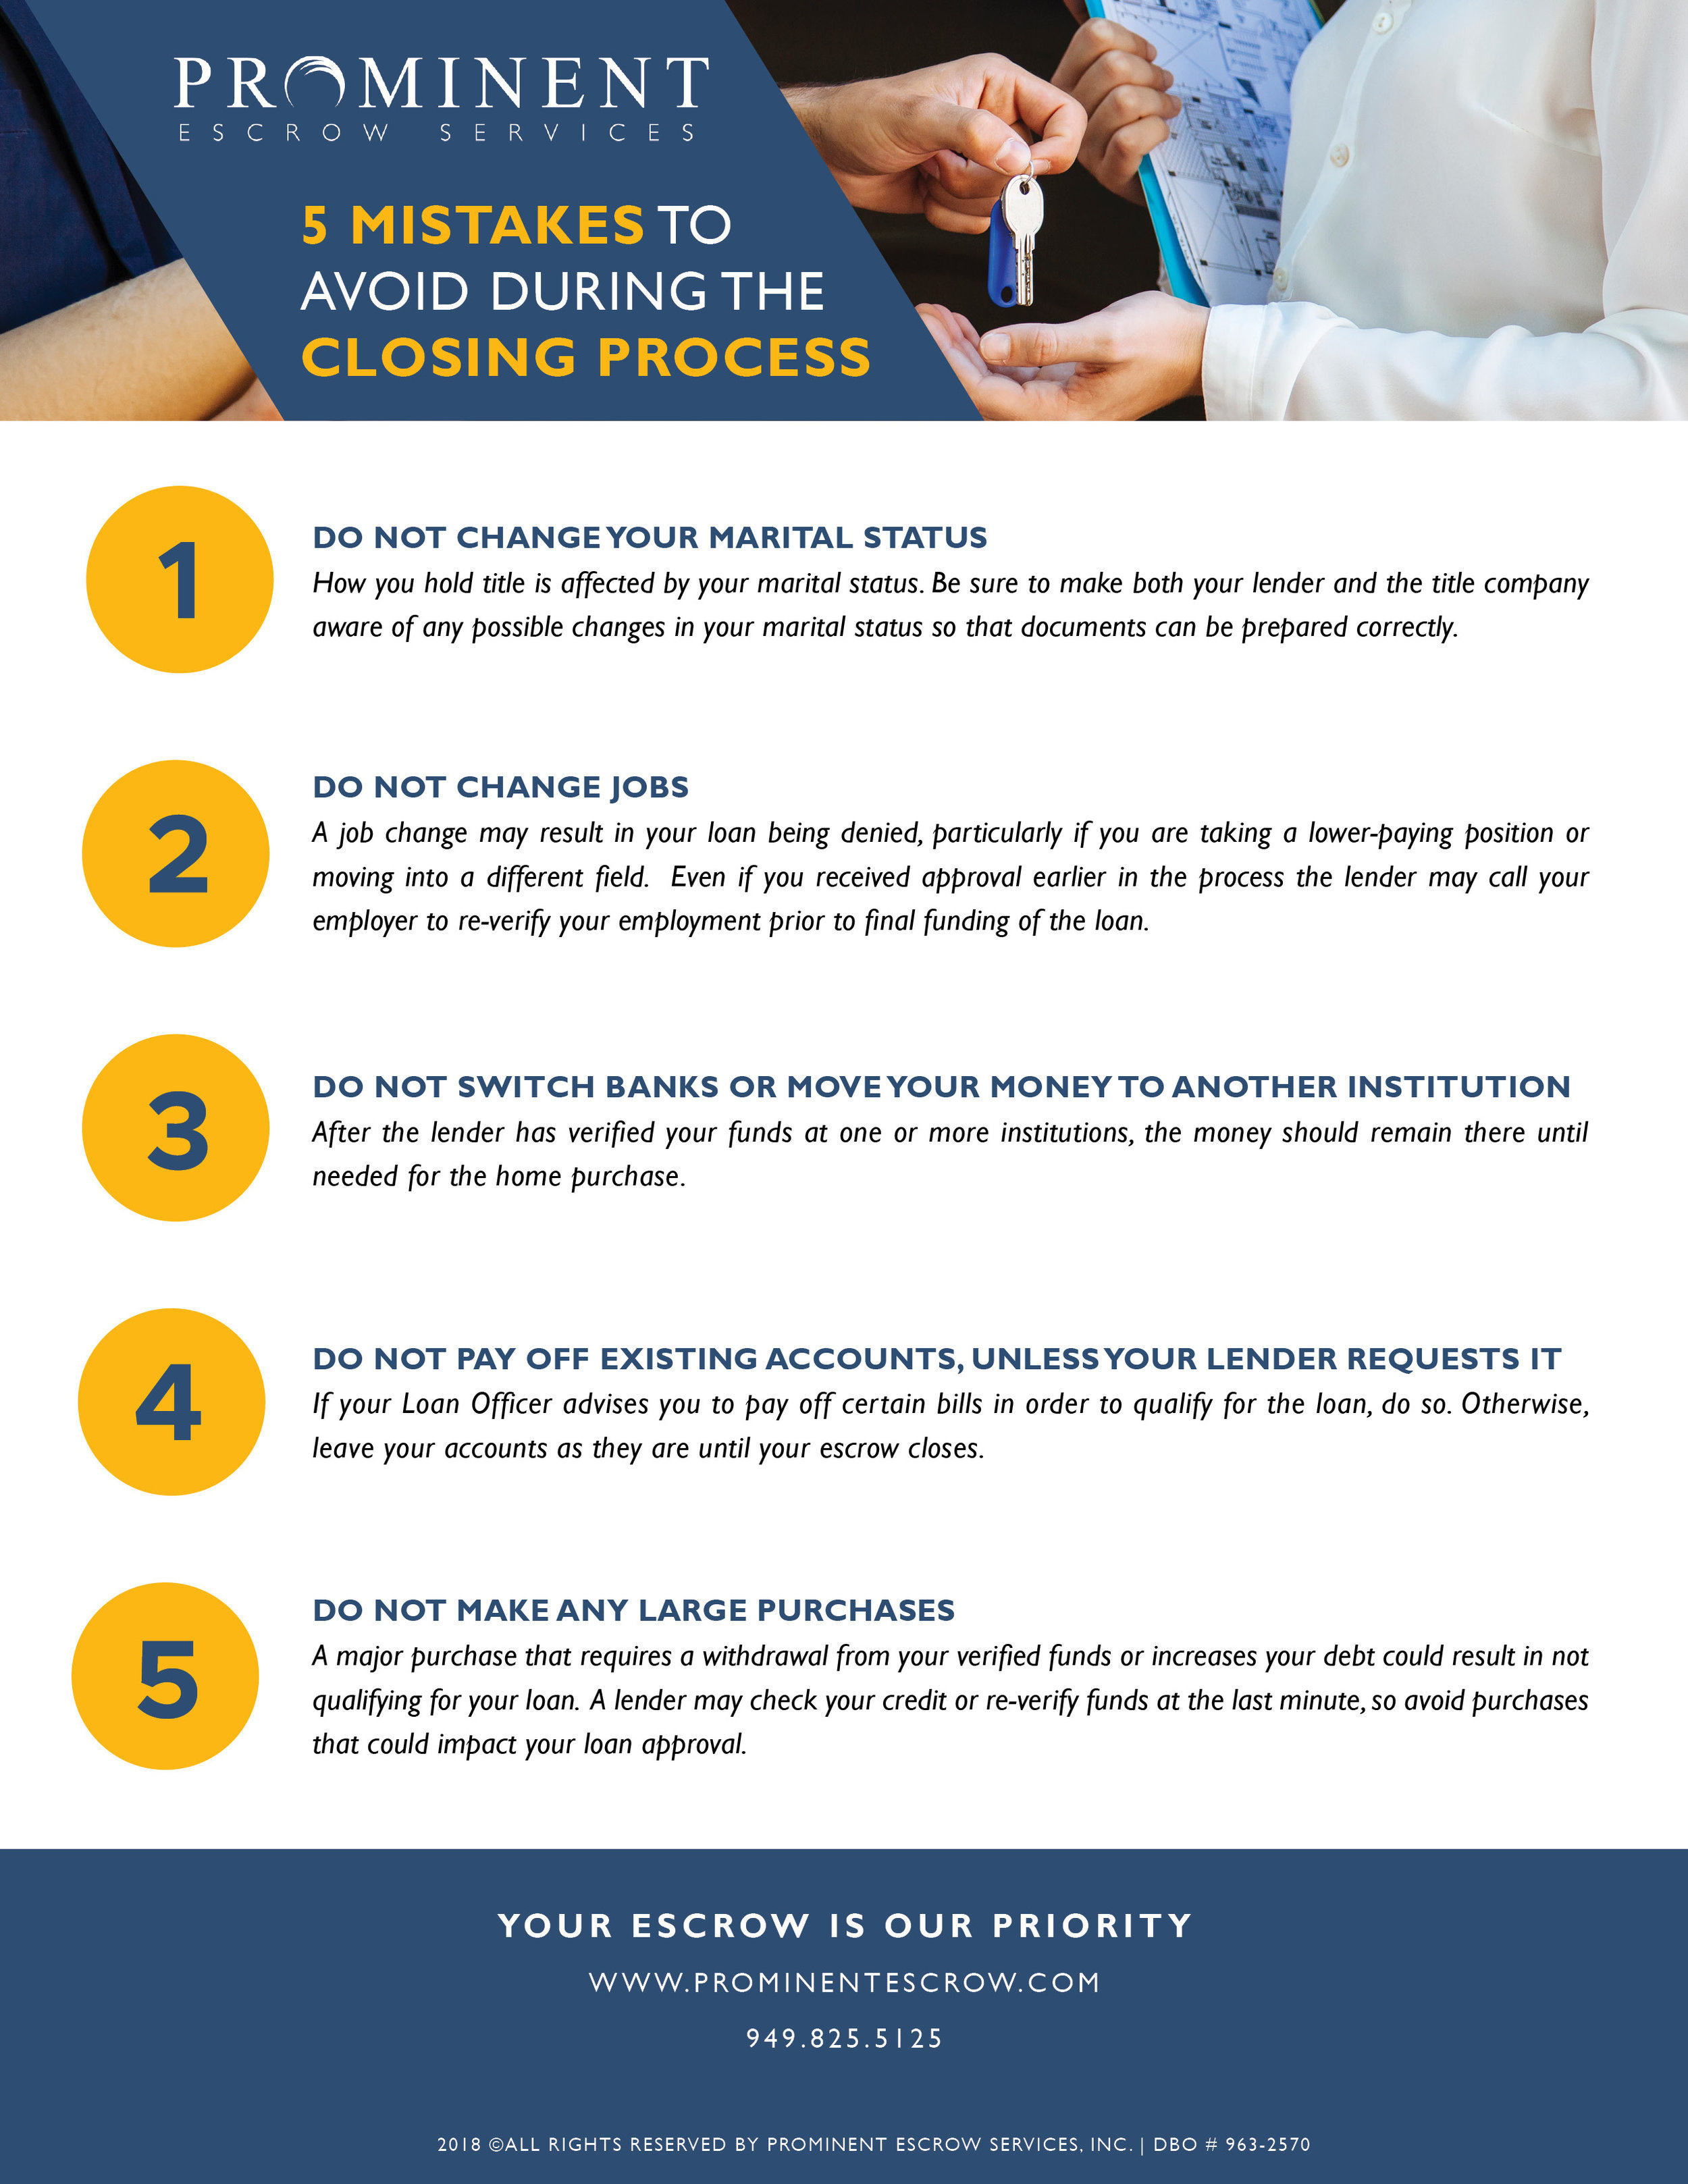 Prominent Escrow_5 Mistakes to Avoid During the Closing Process.jpg